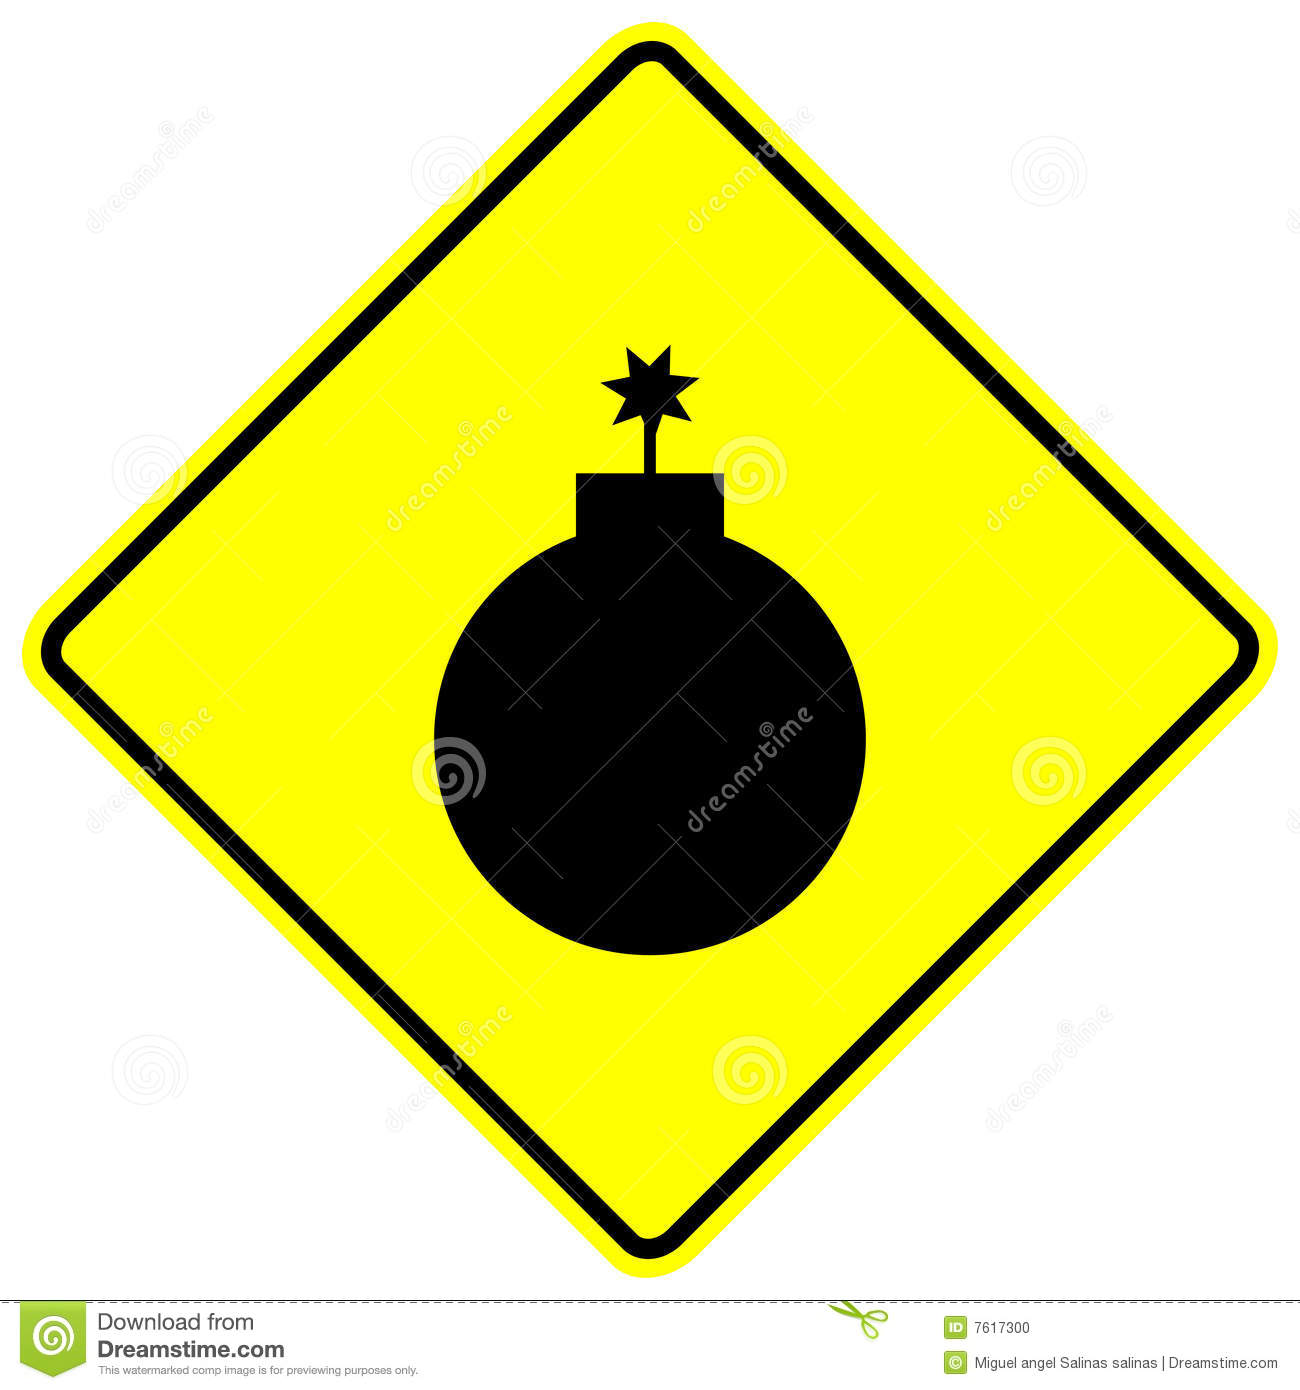 Bomb vector sign stock vector. Illustration of caution ...